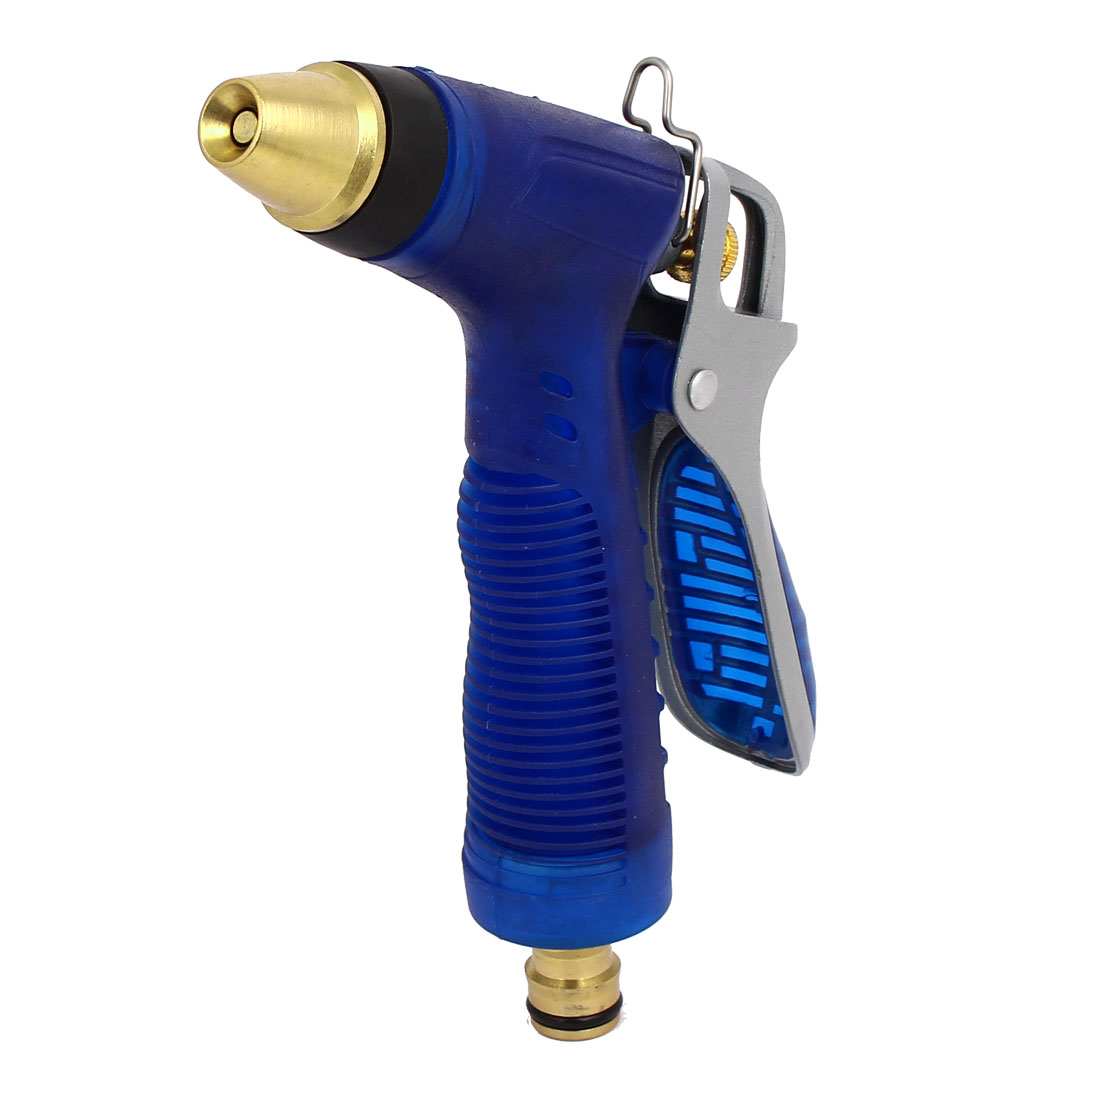 Car Cleaning Rear Control Hose Spray  Nozzle Sprayer Water Fitting Blue